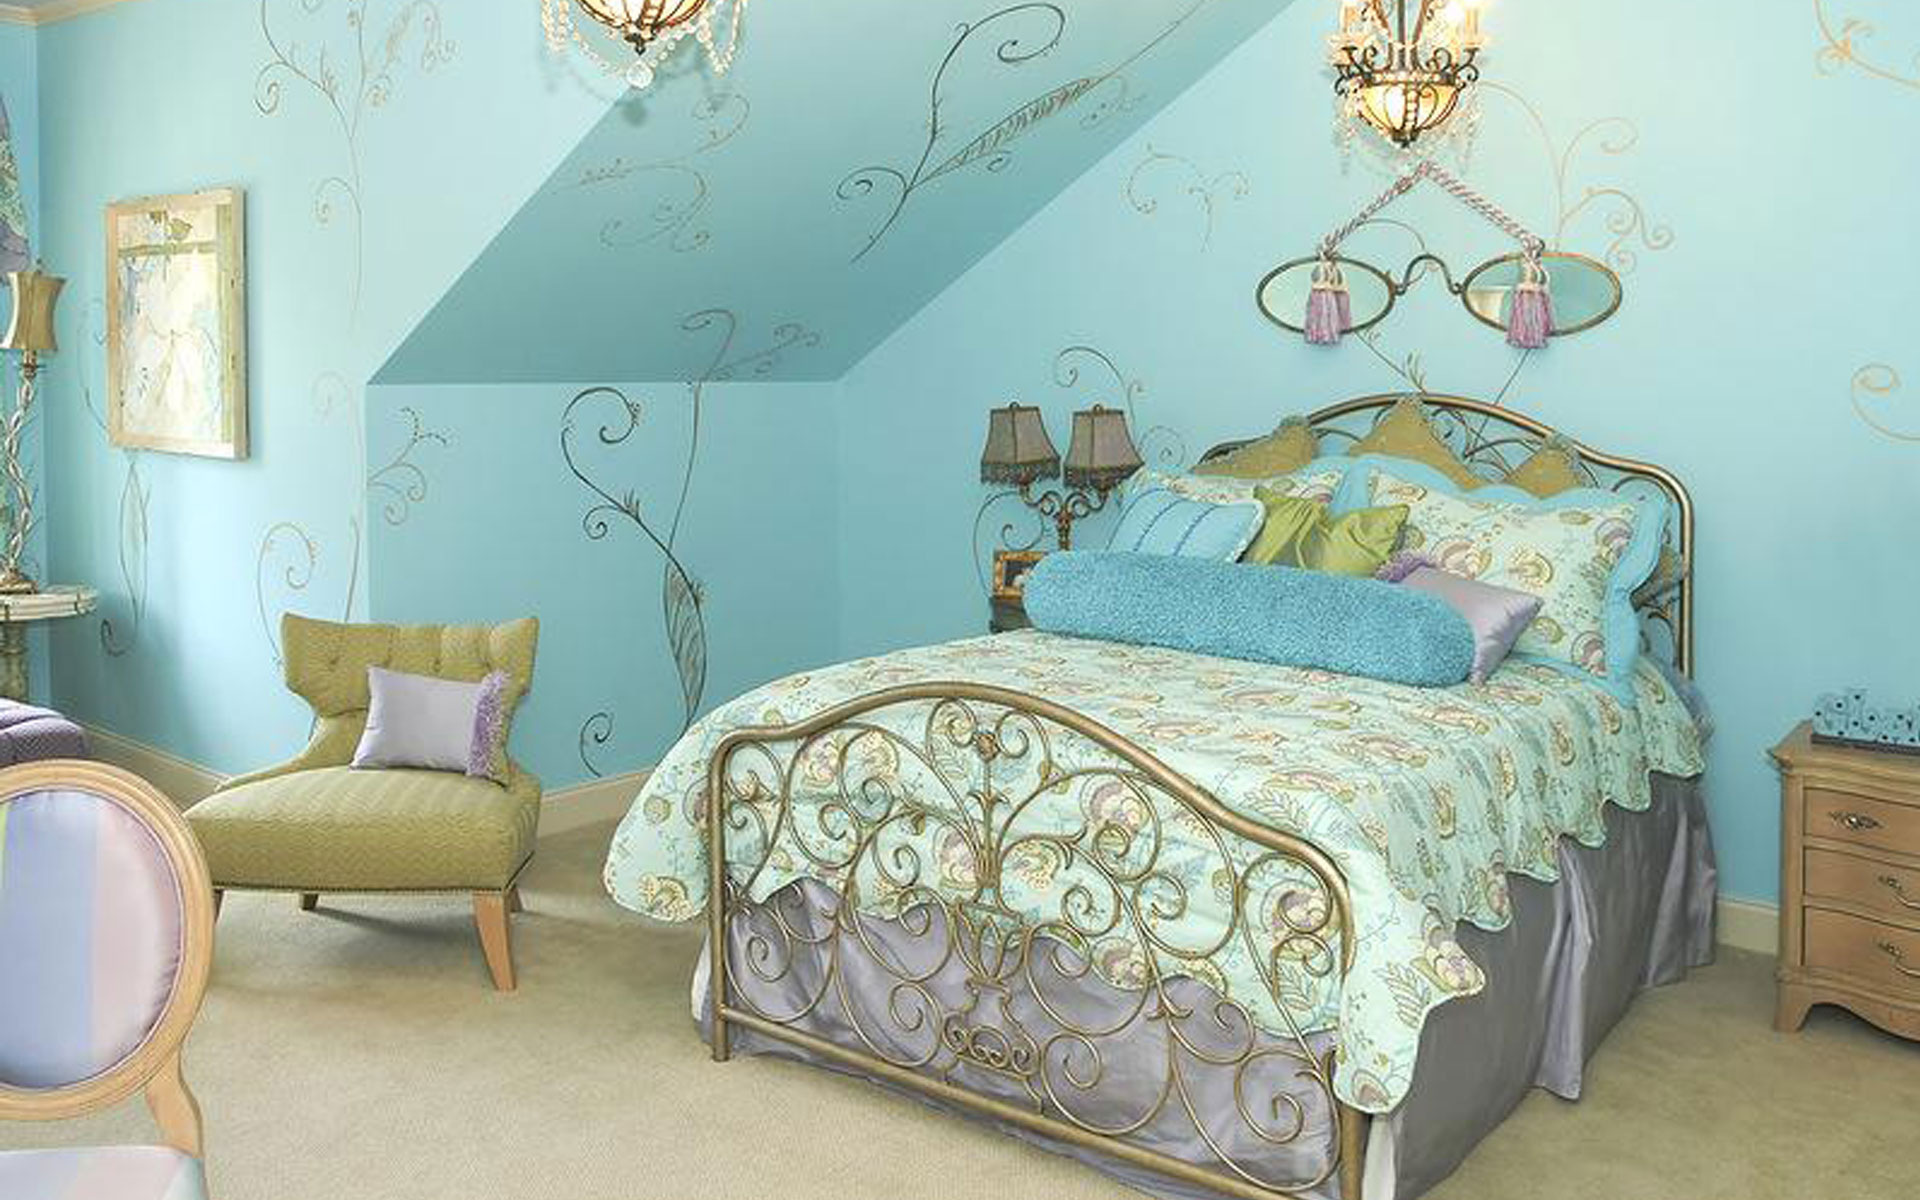 Best teen bedrooms - large and beautiful photos. Photo to select ...